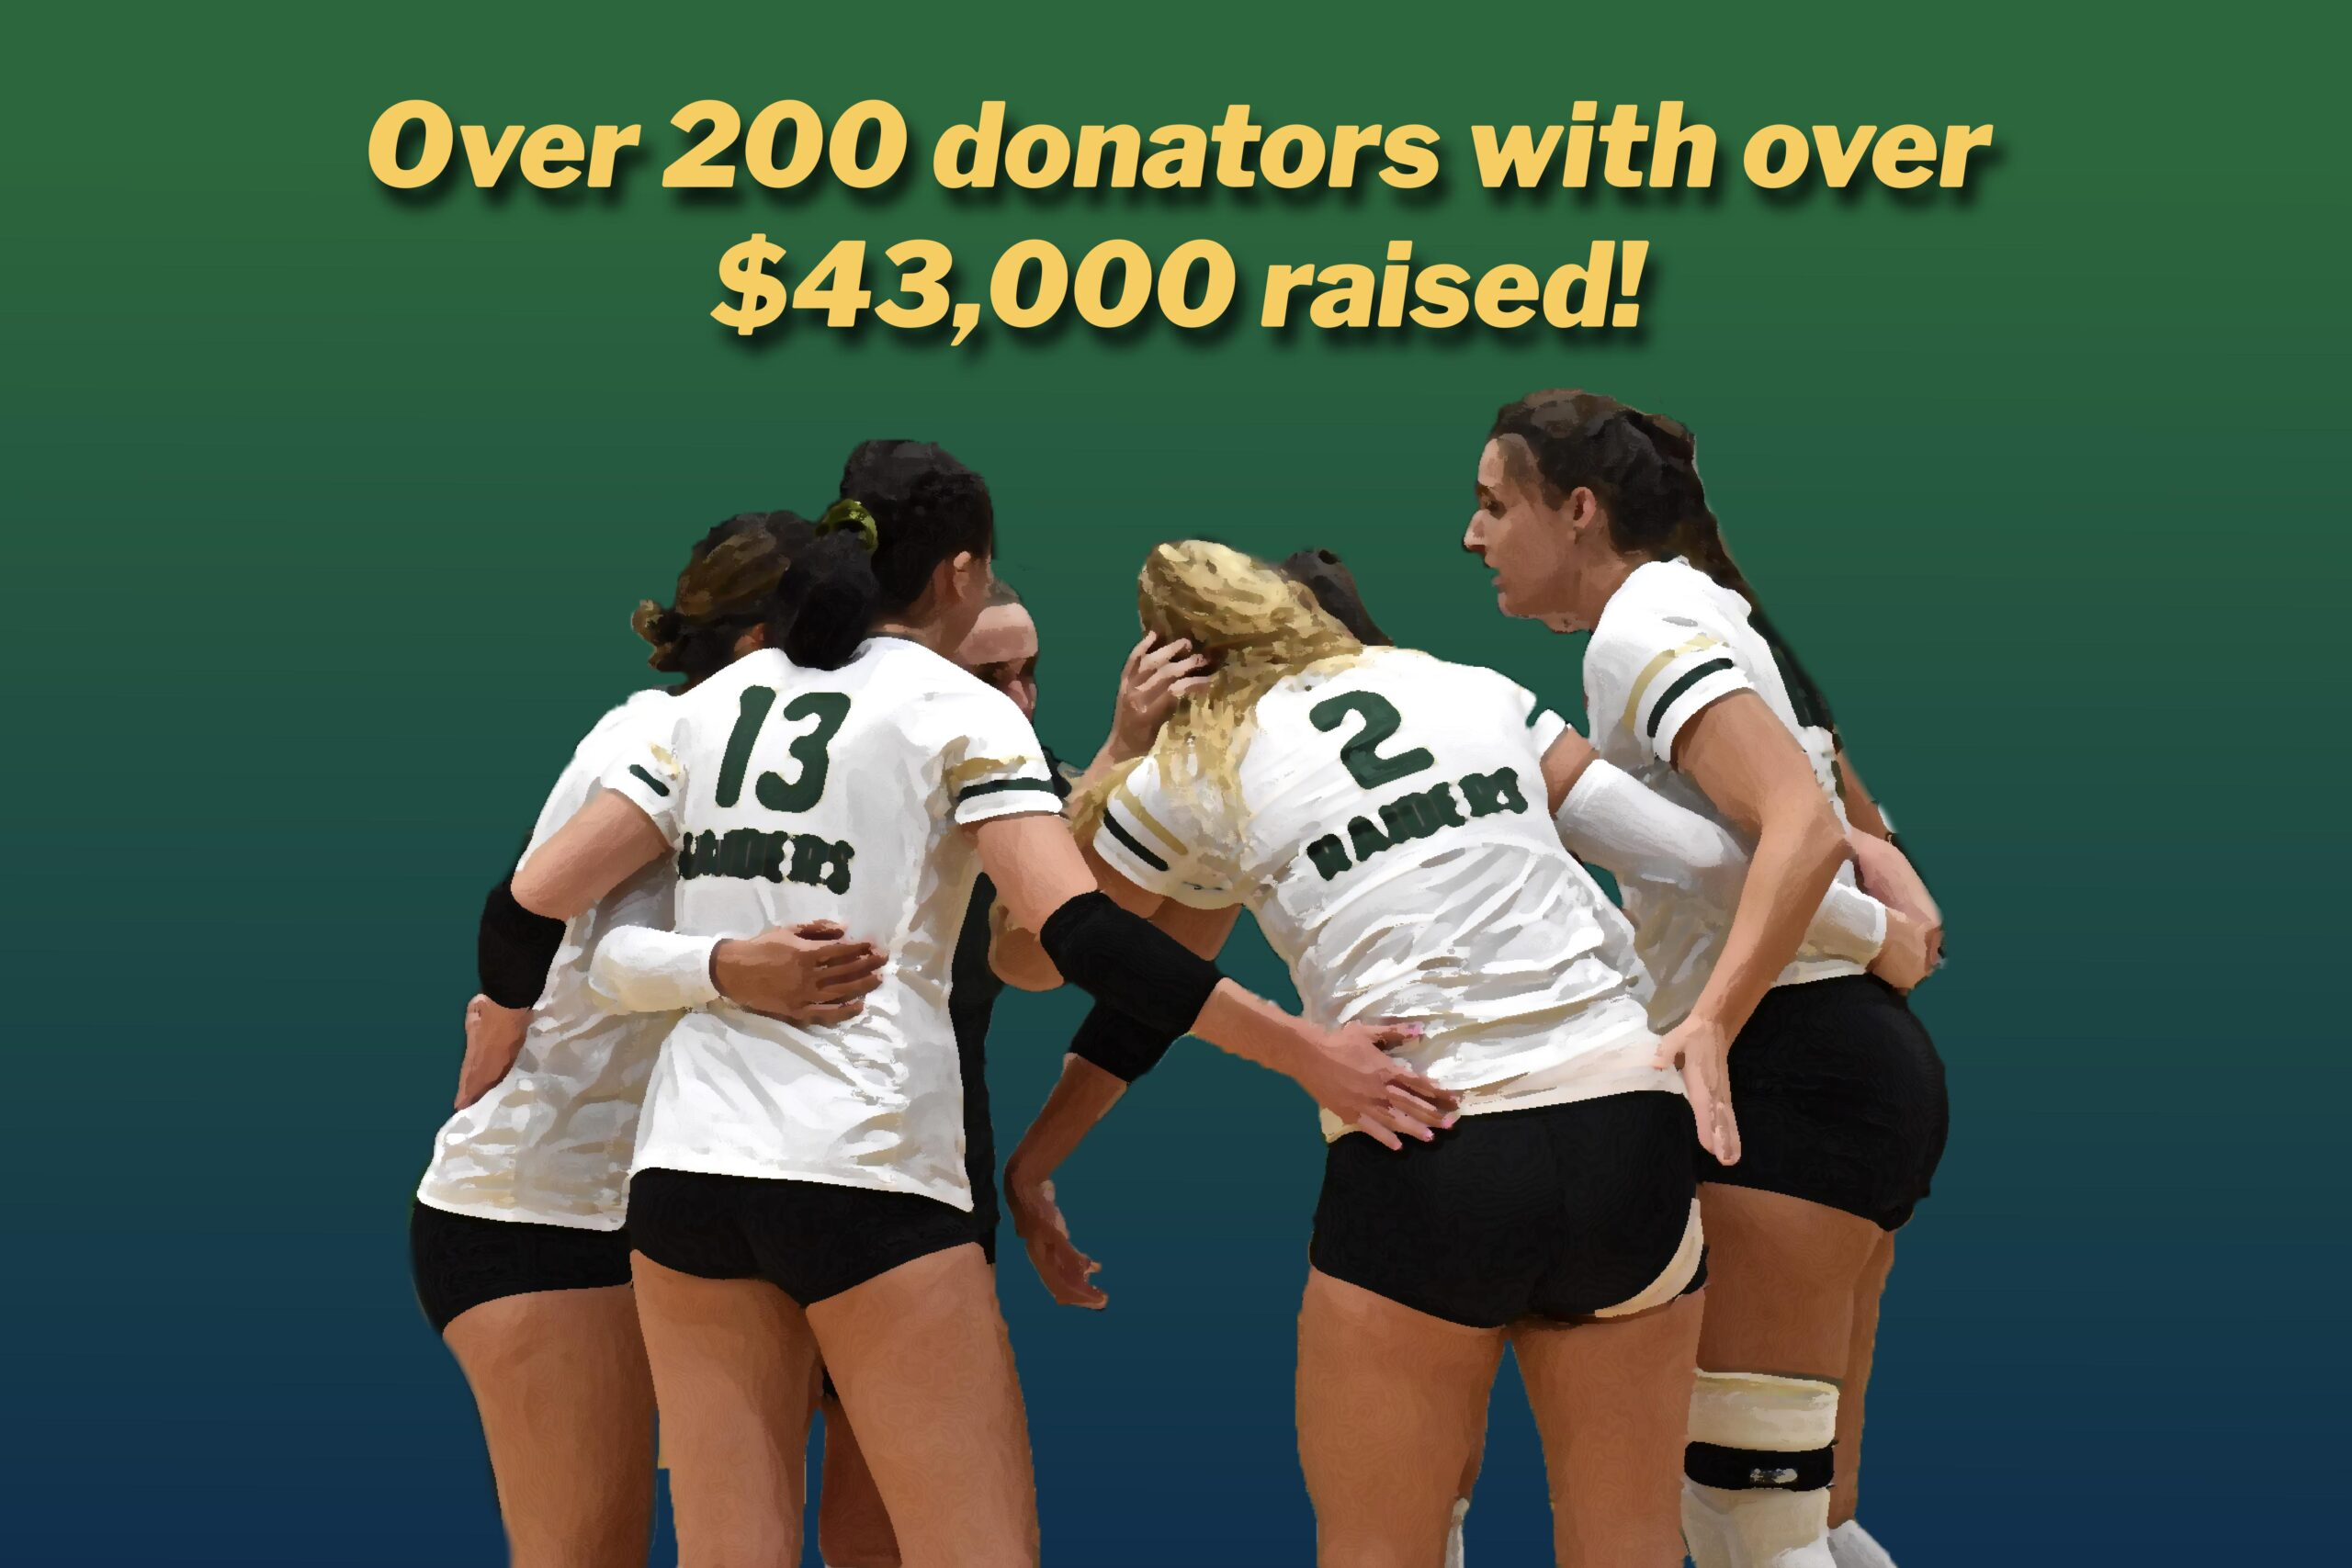 Graphic of 200 donors and over $43,000 raised